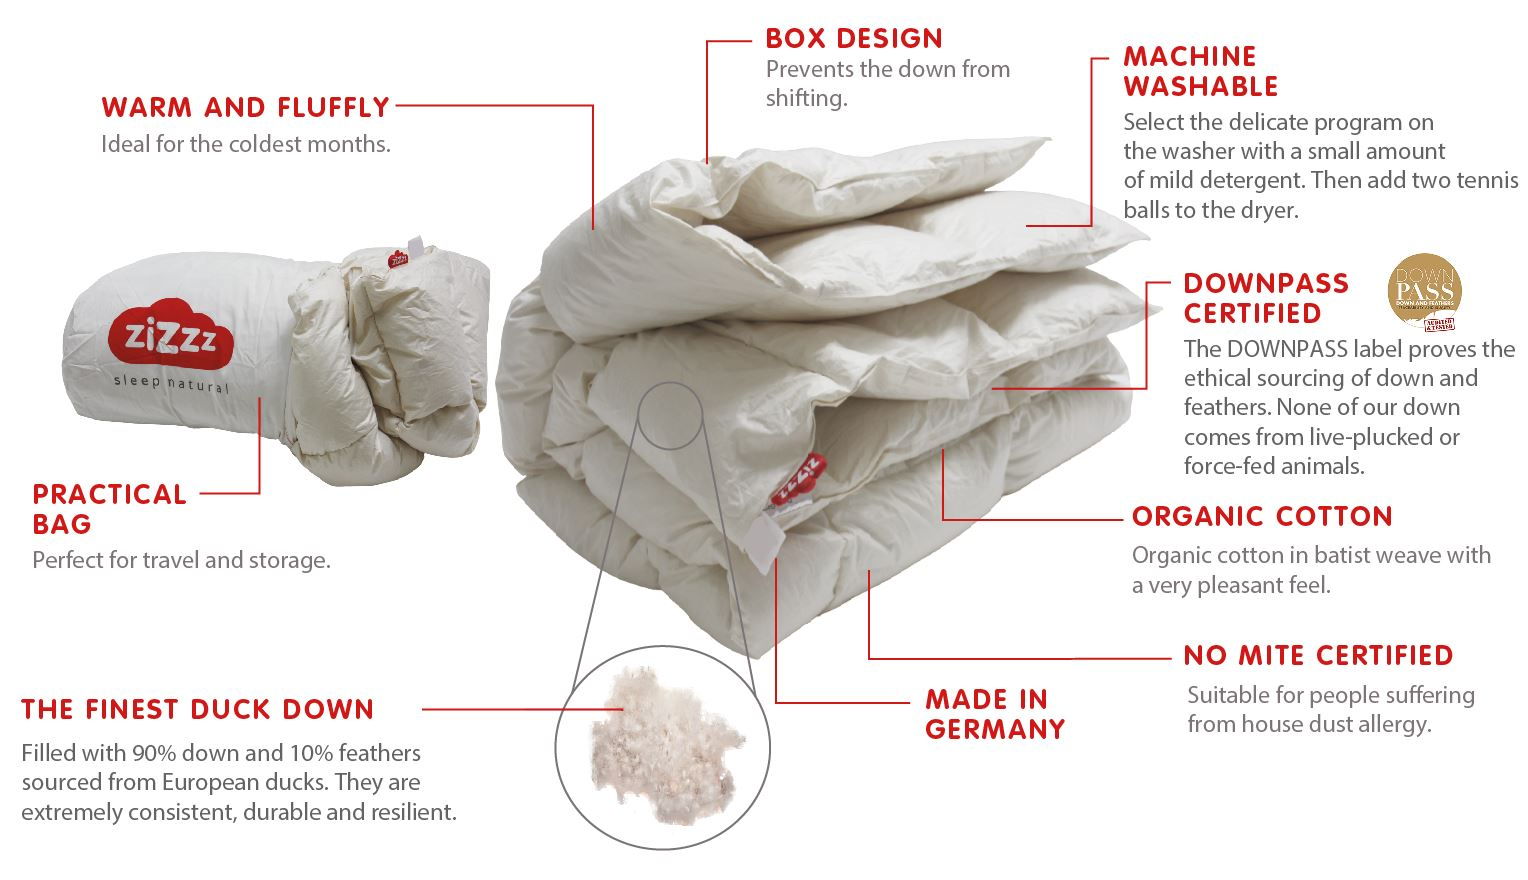 Infographic of the Zizzz duck down duvet, in which the characteristics of the product are presented: warm and fluffy, Karo-stitching, No-Mite certified, organic cotton, DownPass certified, machine-washable.